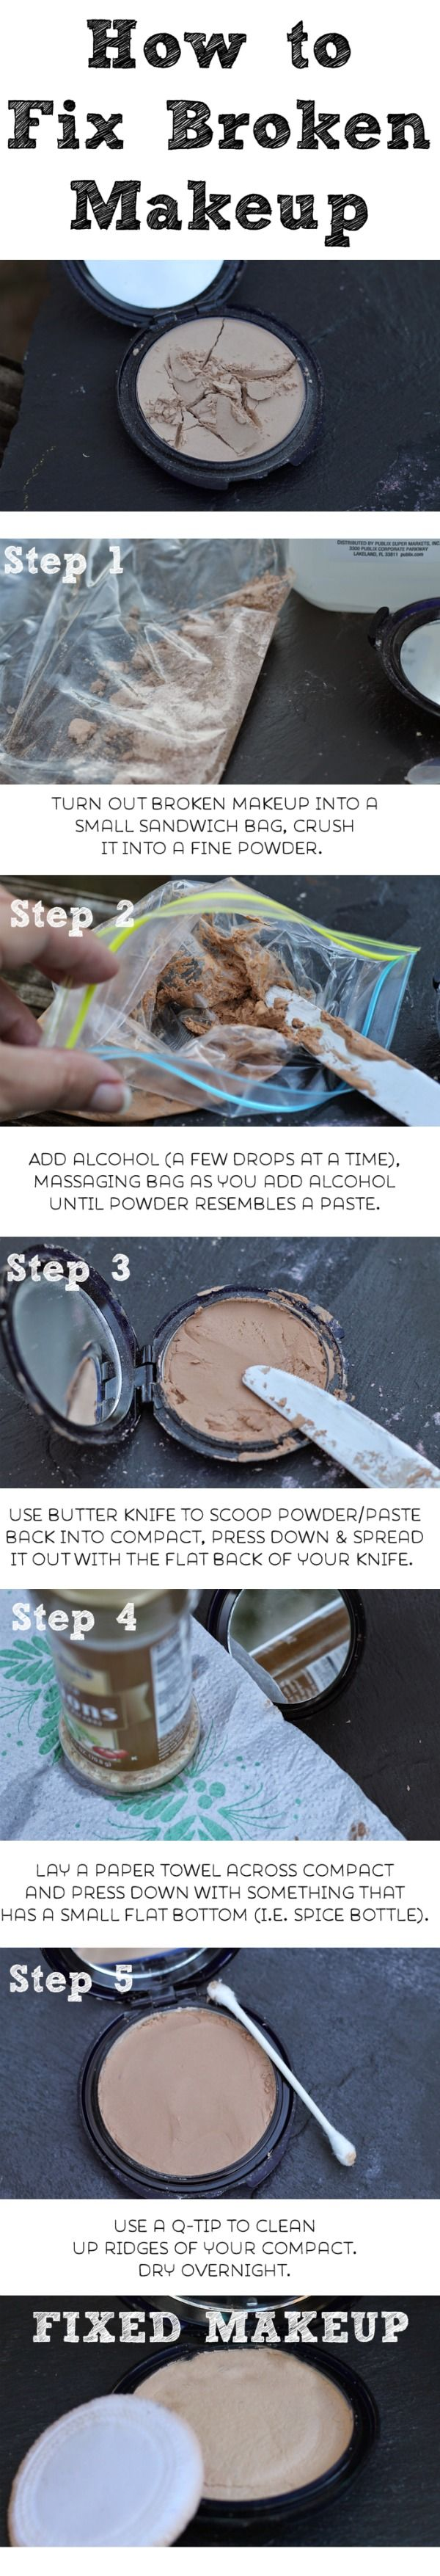 How to Fix Broken Eyeshadow, Blush or Foundation - Ah man! Don't you hate it when you break your favorite make up into a thousand pieces? Before you toss it in the trash, give this step-by-step tutorial on how to fix broken makeup a try. I assure you it's easier than you may think!